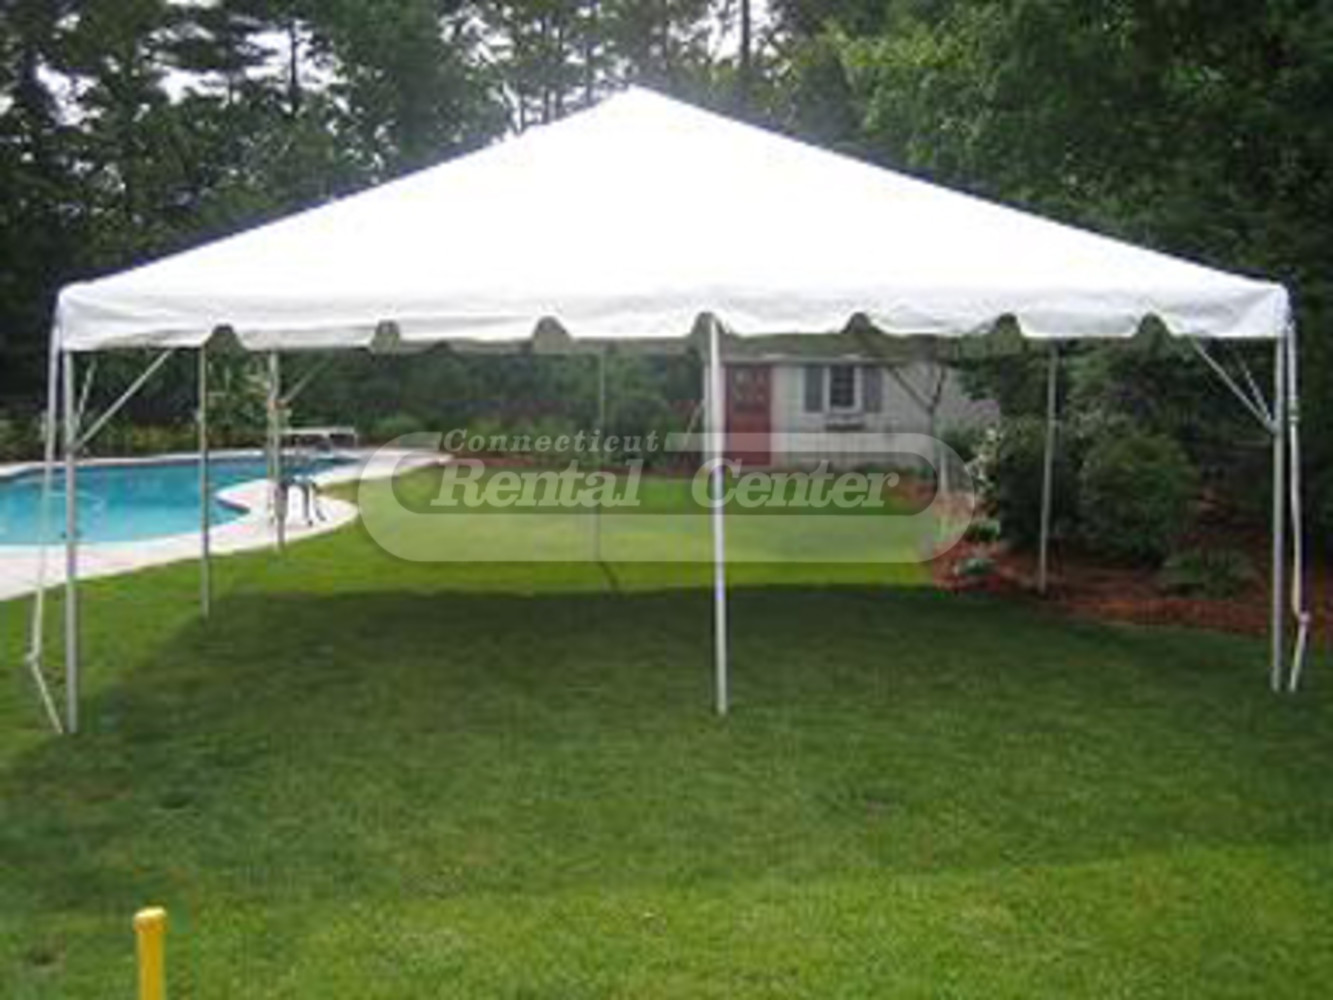 Rent 20 X 20 Frame Tents From Ct Rental Center